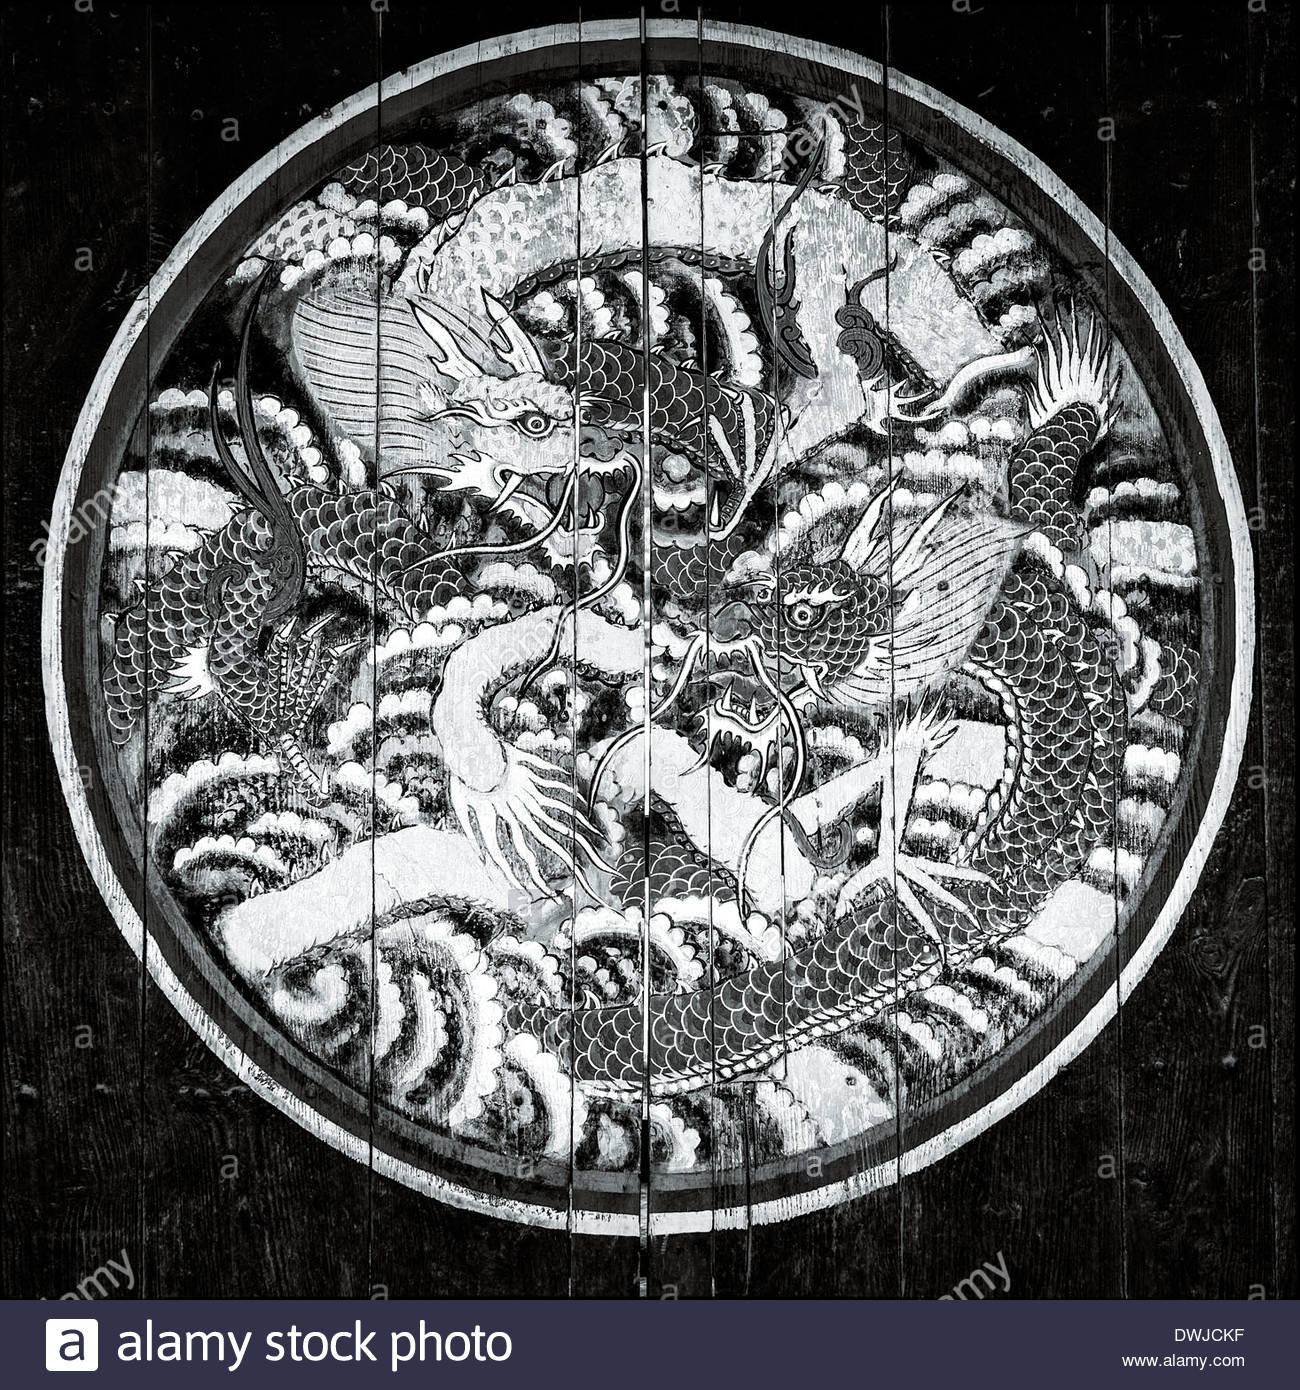 Close up detail of a Buddhist dragon symbol painted on a Buddhist temple, Chungju, South Korea. - Stock Image